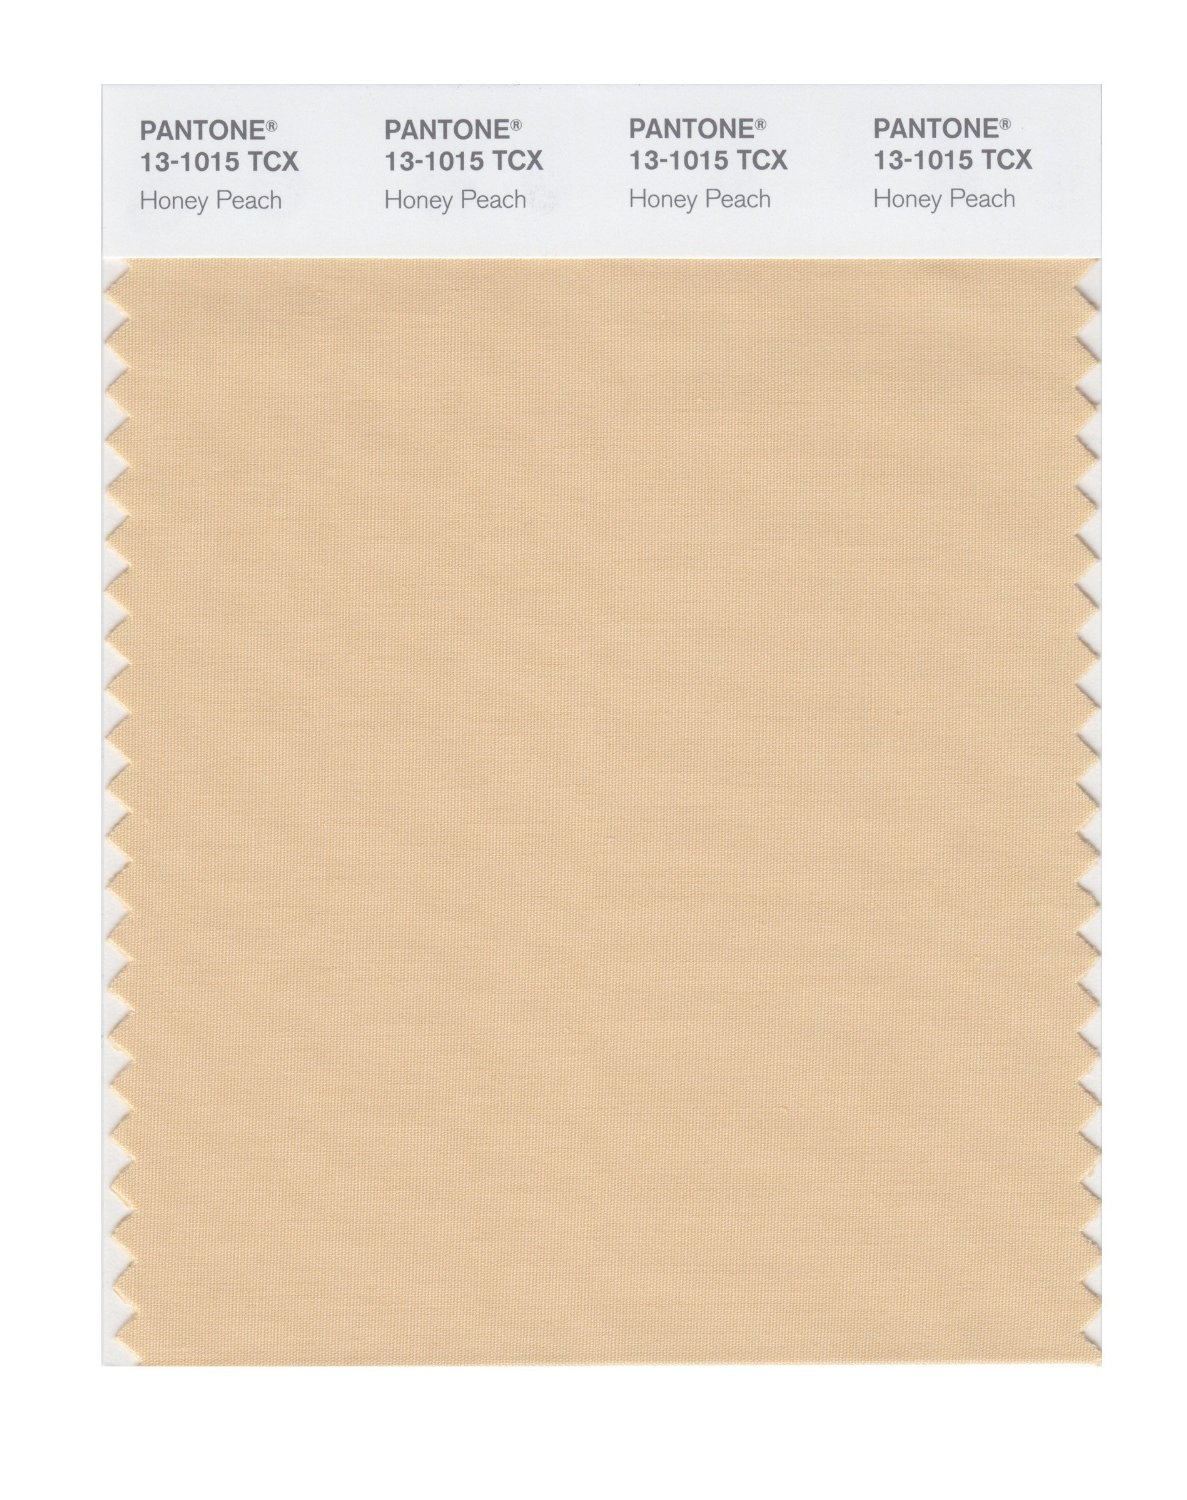 Pantone Smart Swatch 13-1015 Honey Peach